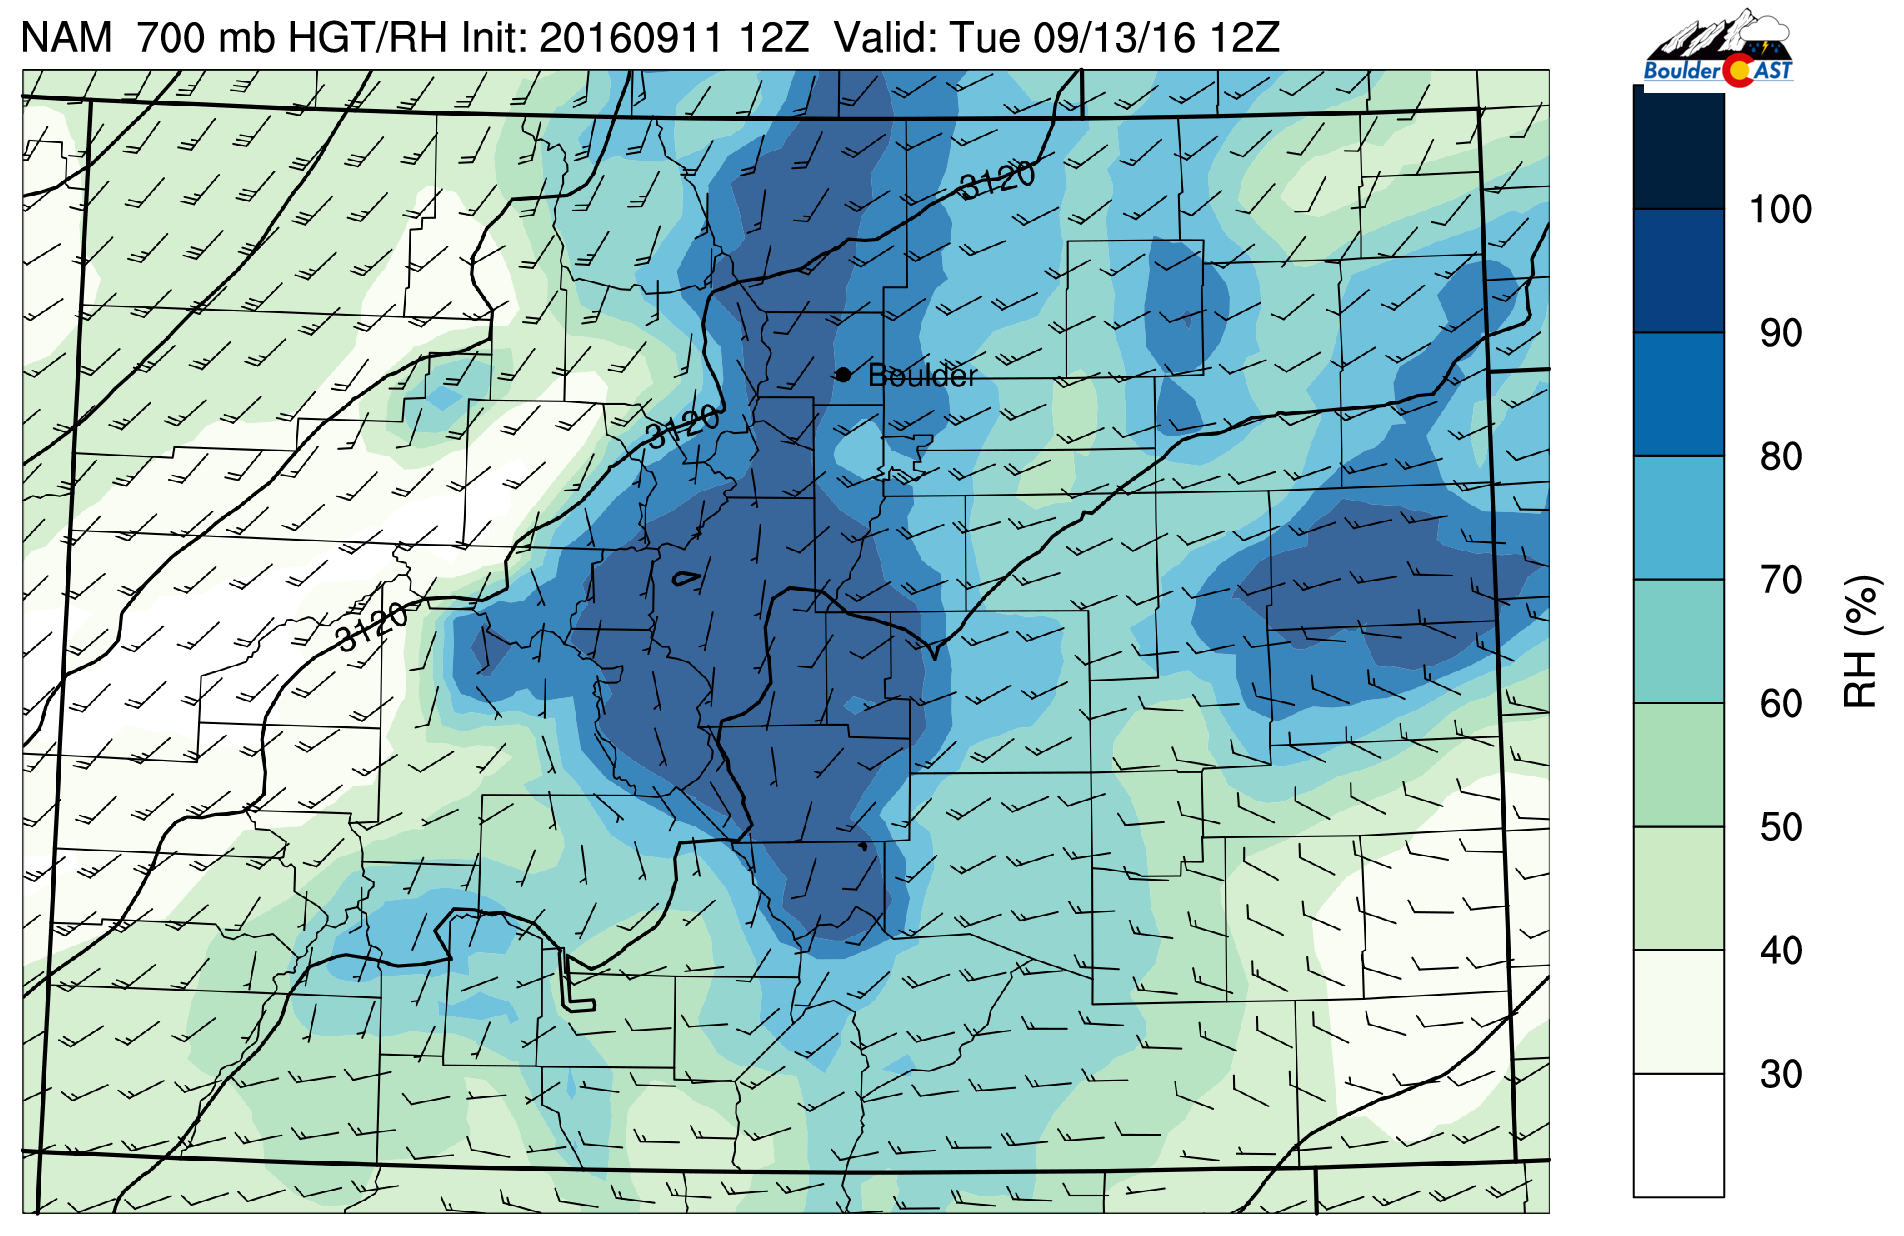 NAM 700 mb relative humidity and wind speeds for Tuesday morning